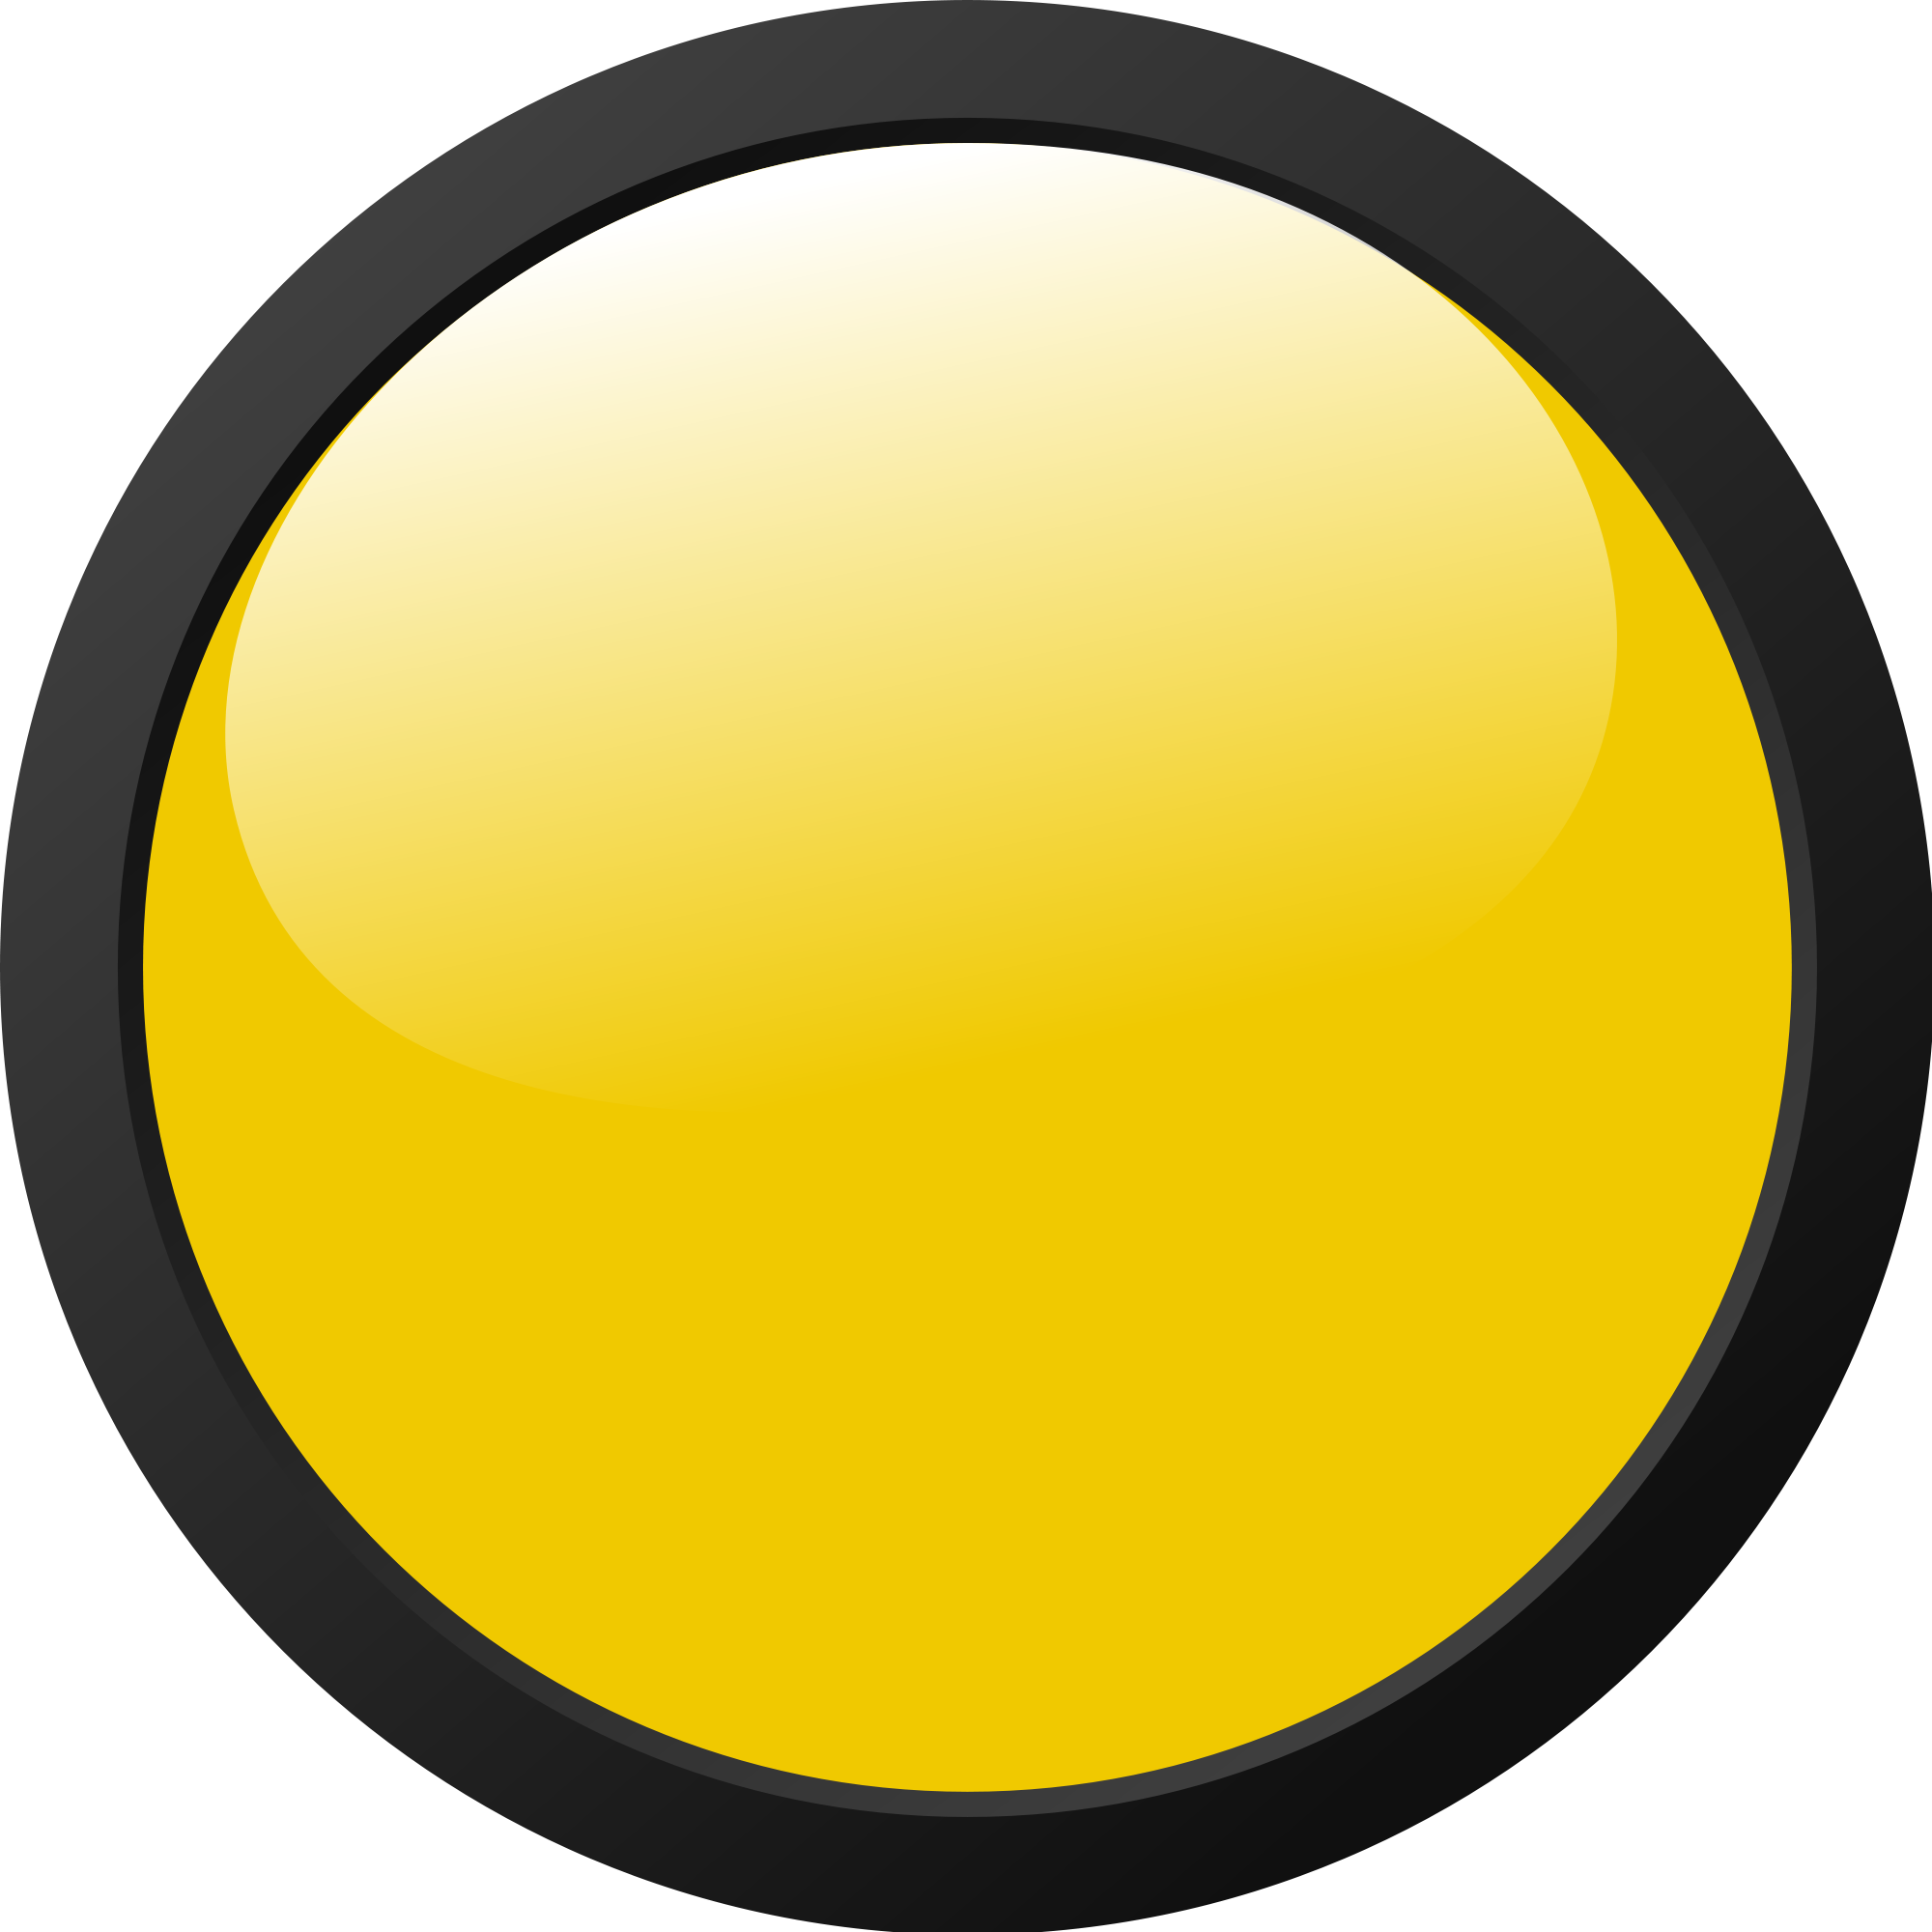 Lights clipart yellow, Lights yellow Transparent FREE for.